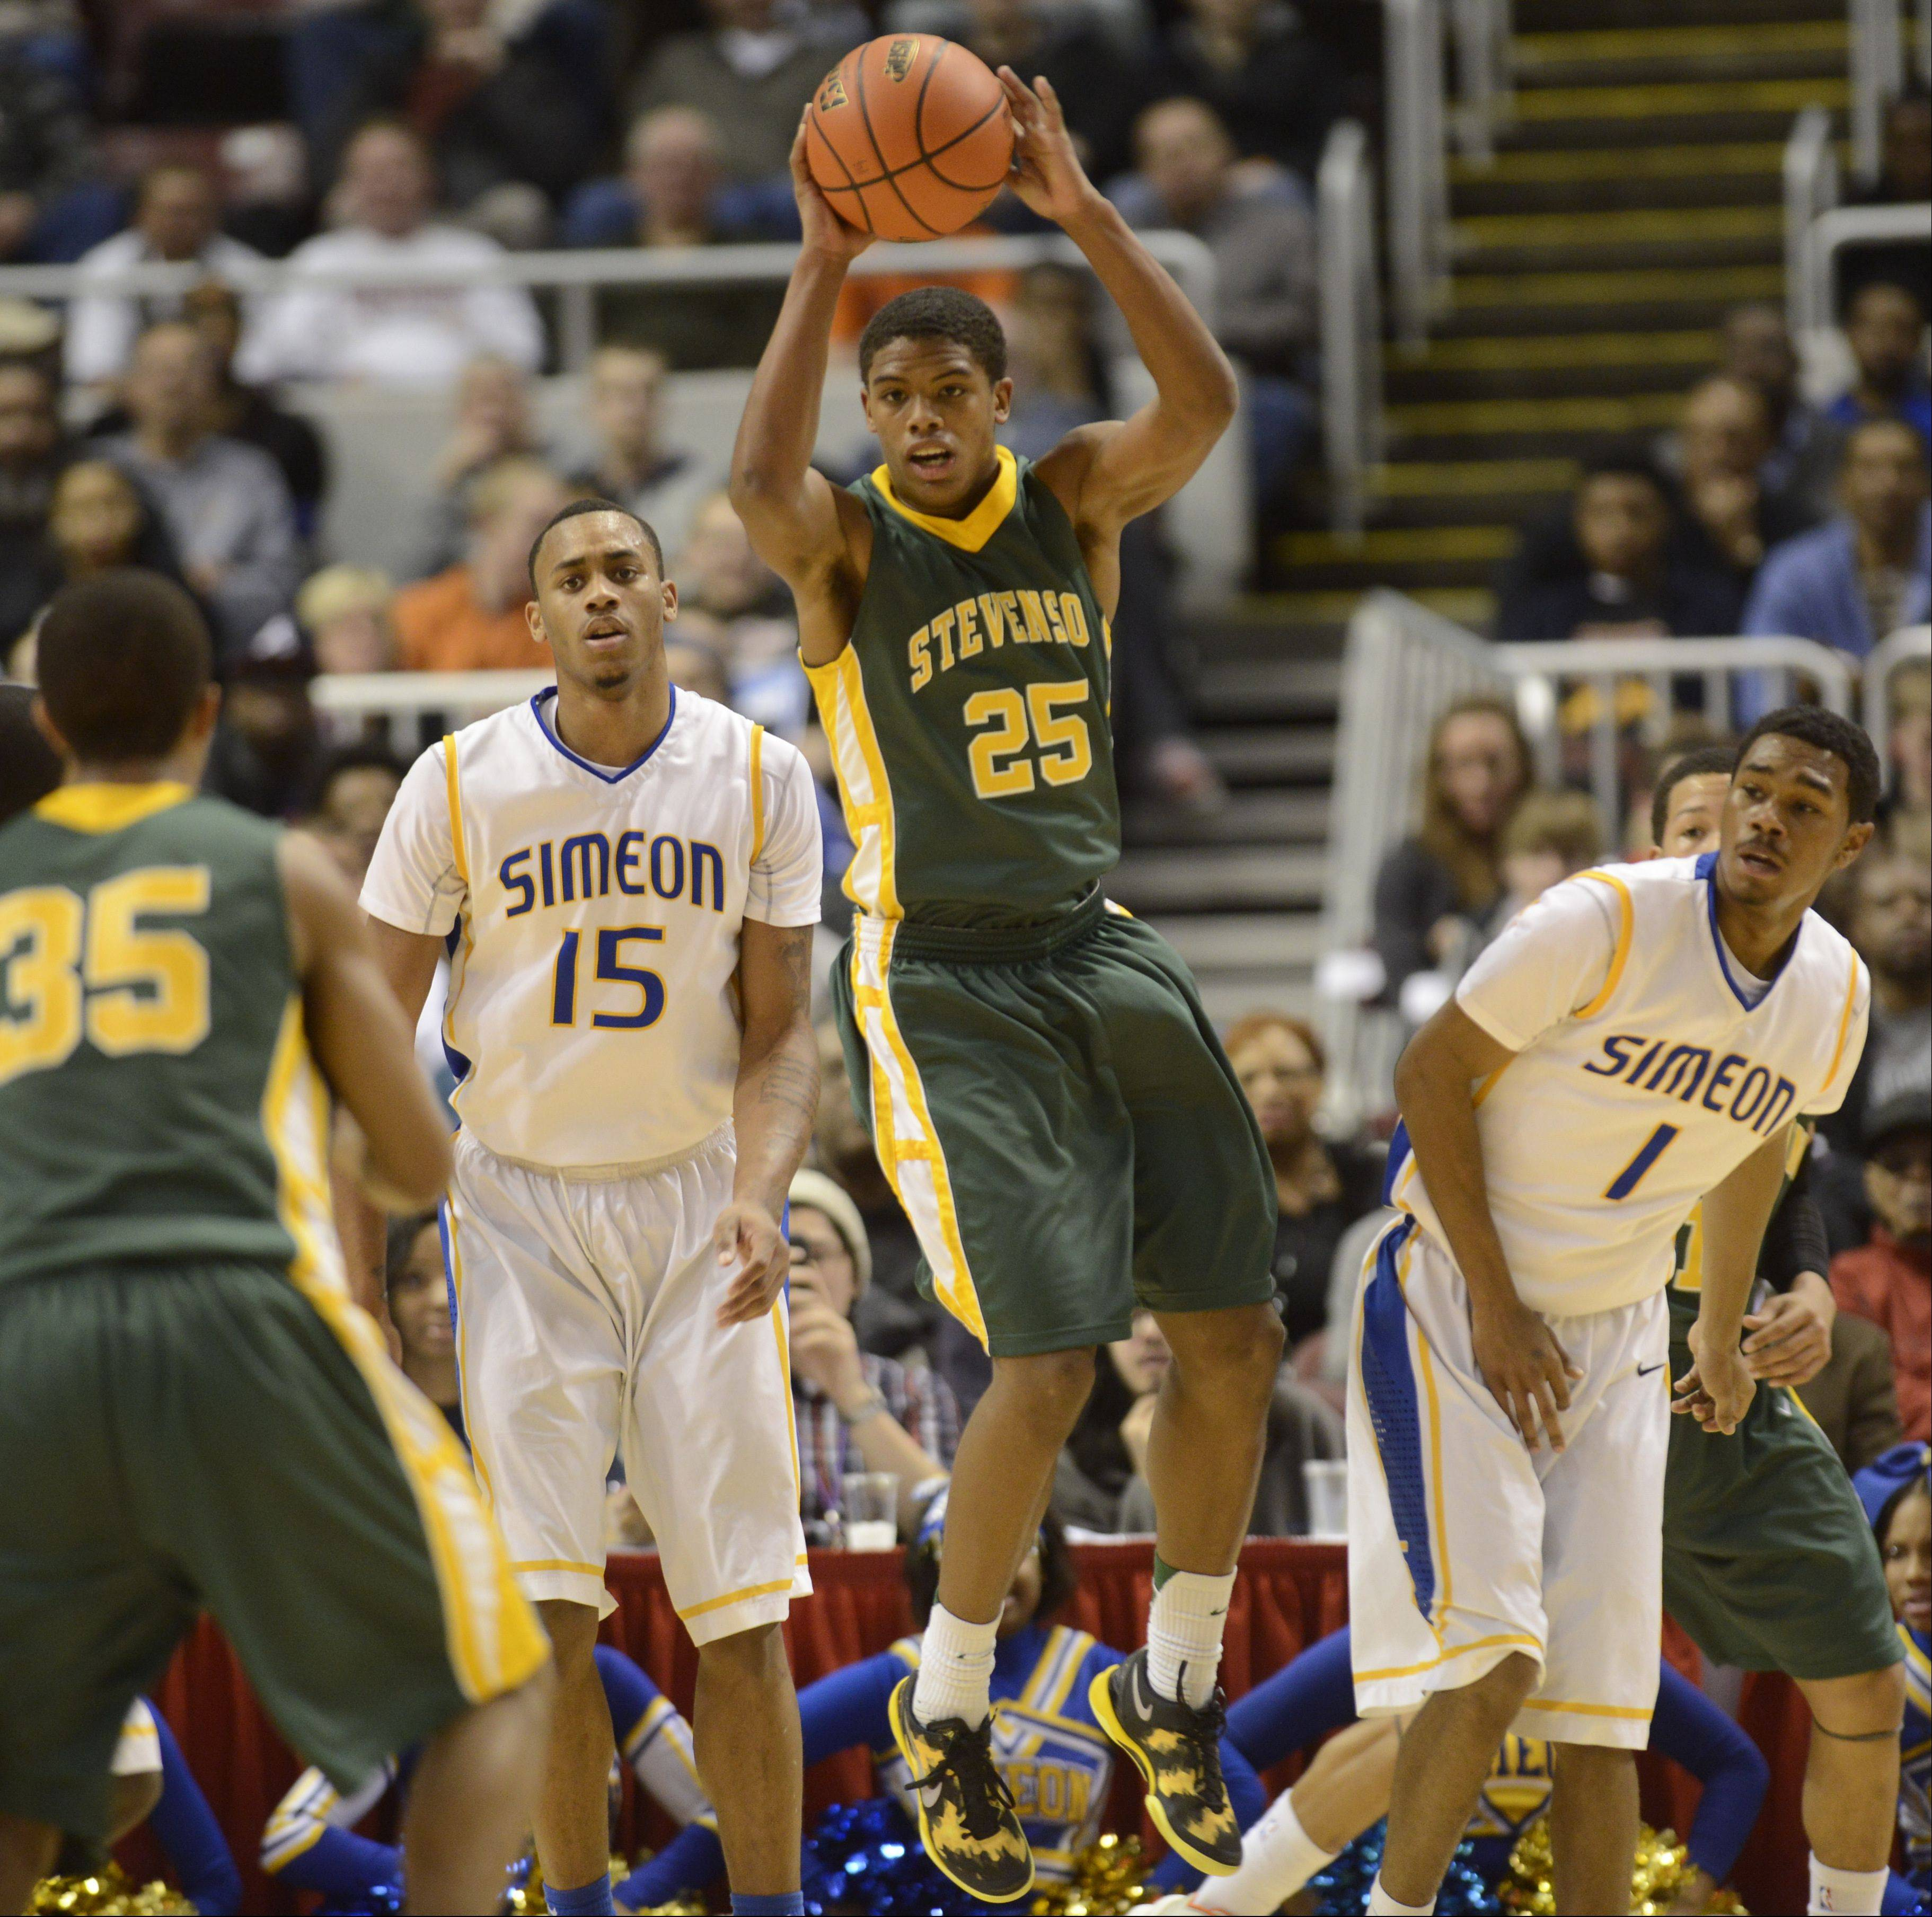 Stevenson sophomore Cameron Green looks to pass the ball during Saturday night's Class 4A state championship game against Simeon.